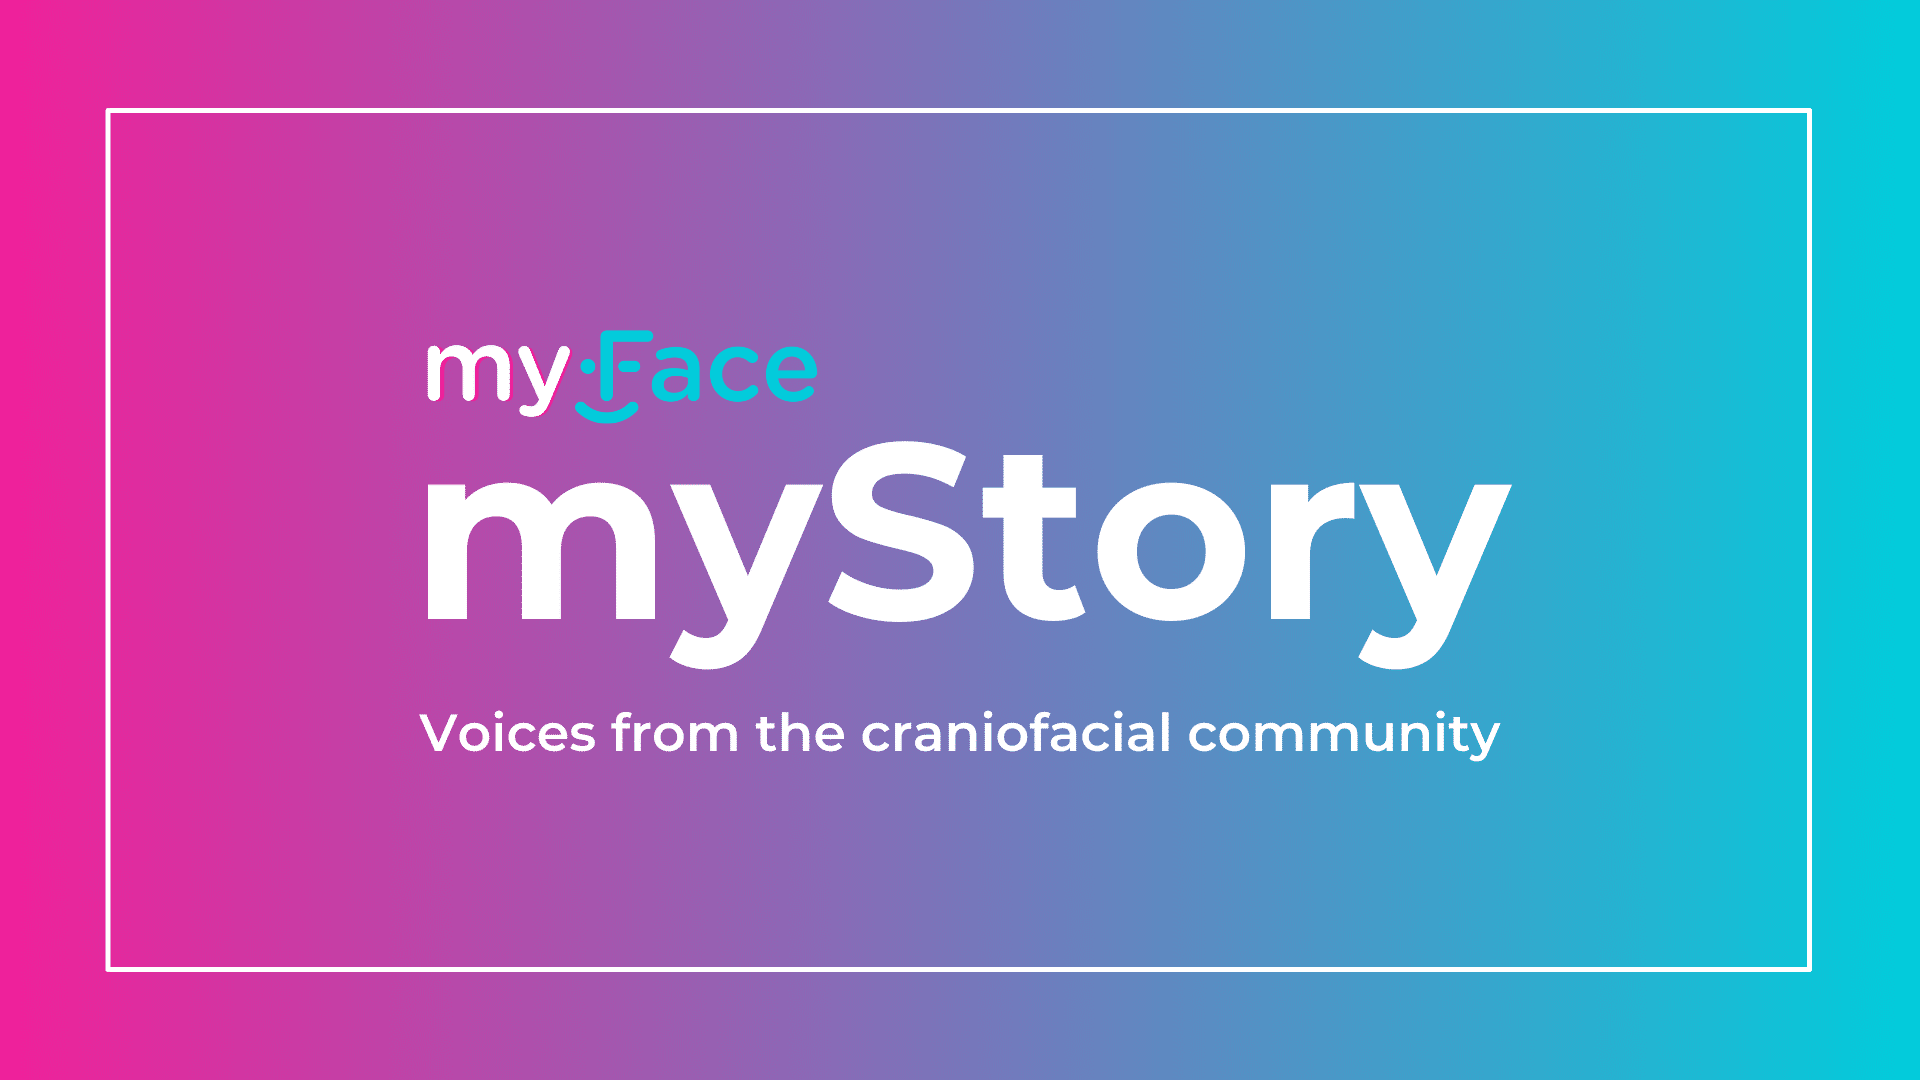 """Header image with gradient background from pink at left to baby blue at right, overlayed with the show title """"myFace, myStory"""" in bold white lettering."""